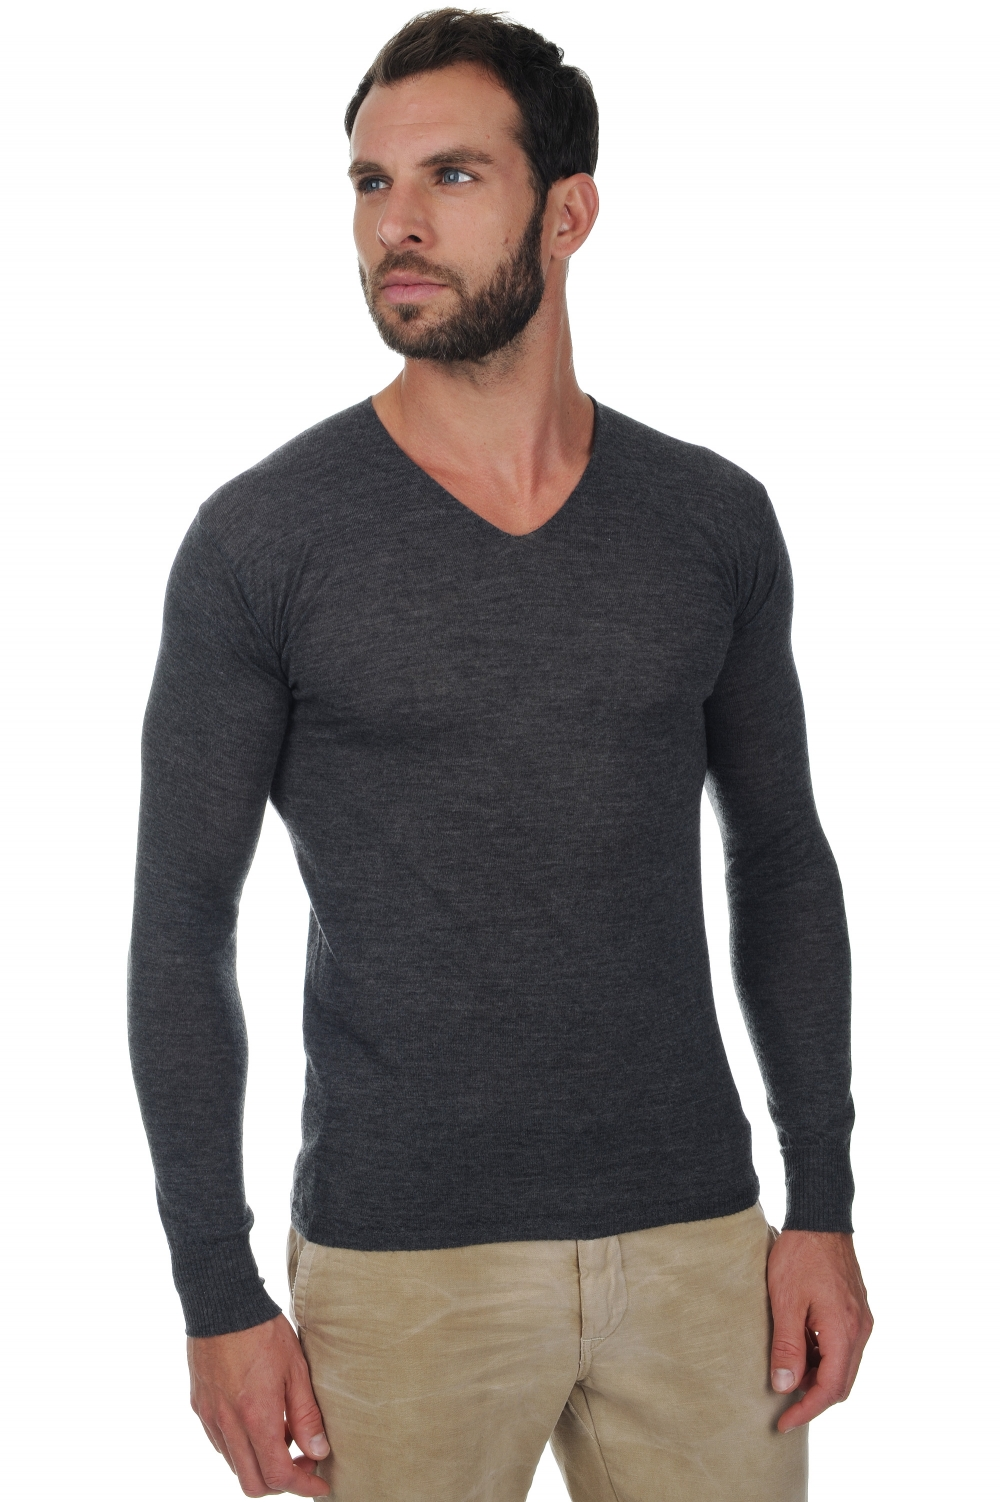 Cashmere Duvet men v necks josh charcoal xs